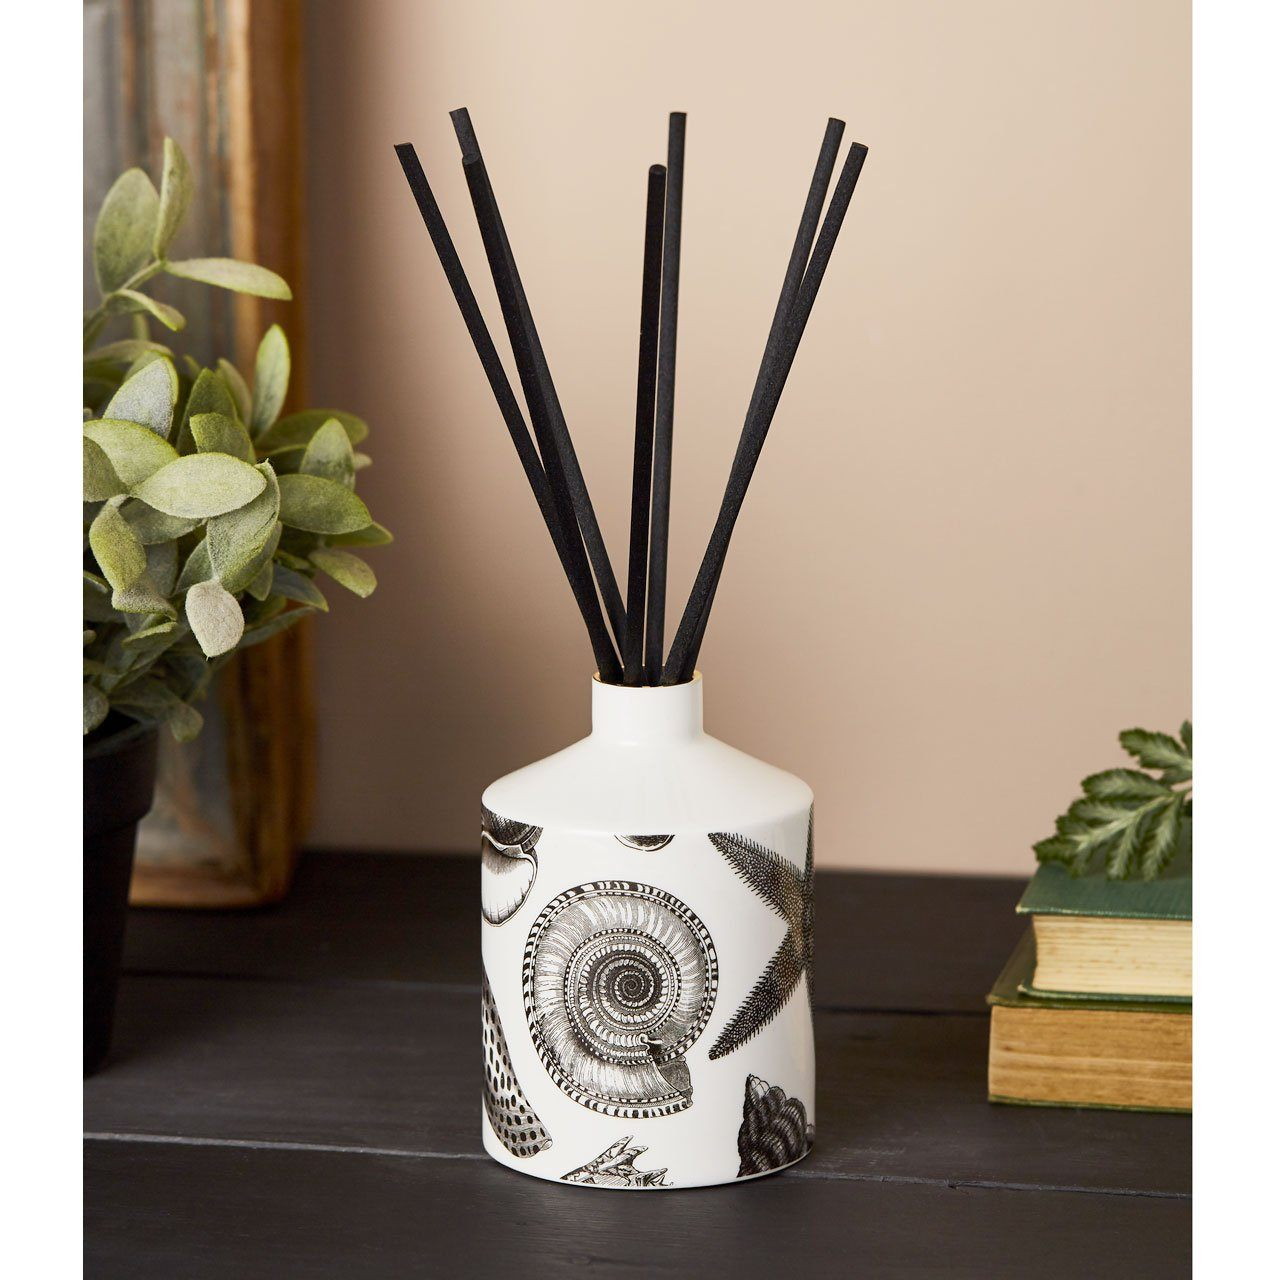 The Seashore Ceramic Diffuser - Chase and Wonder - Proudly Made in Britain